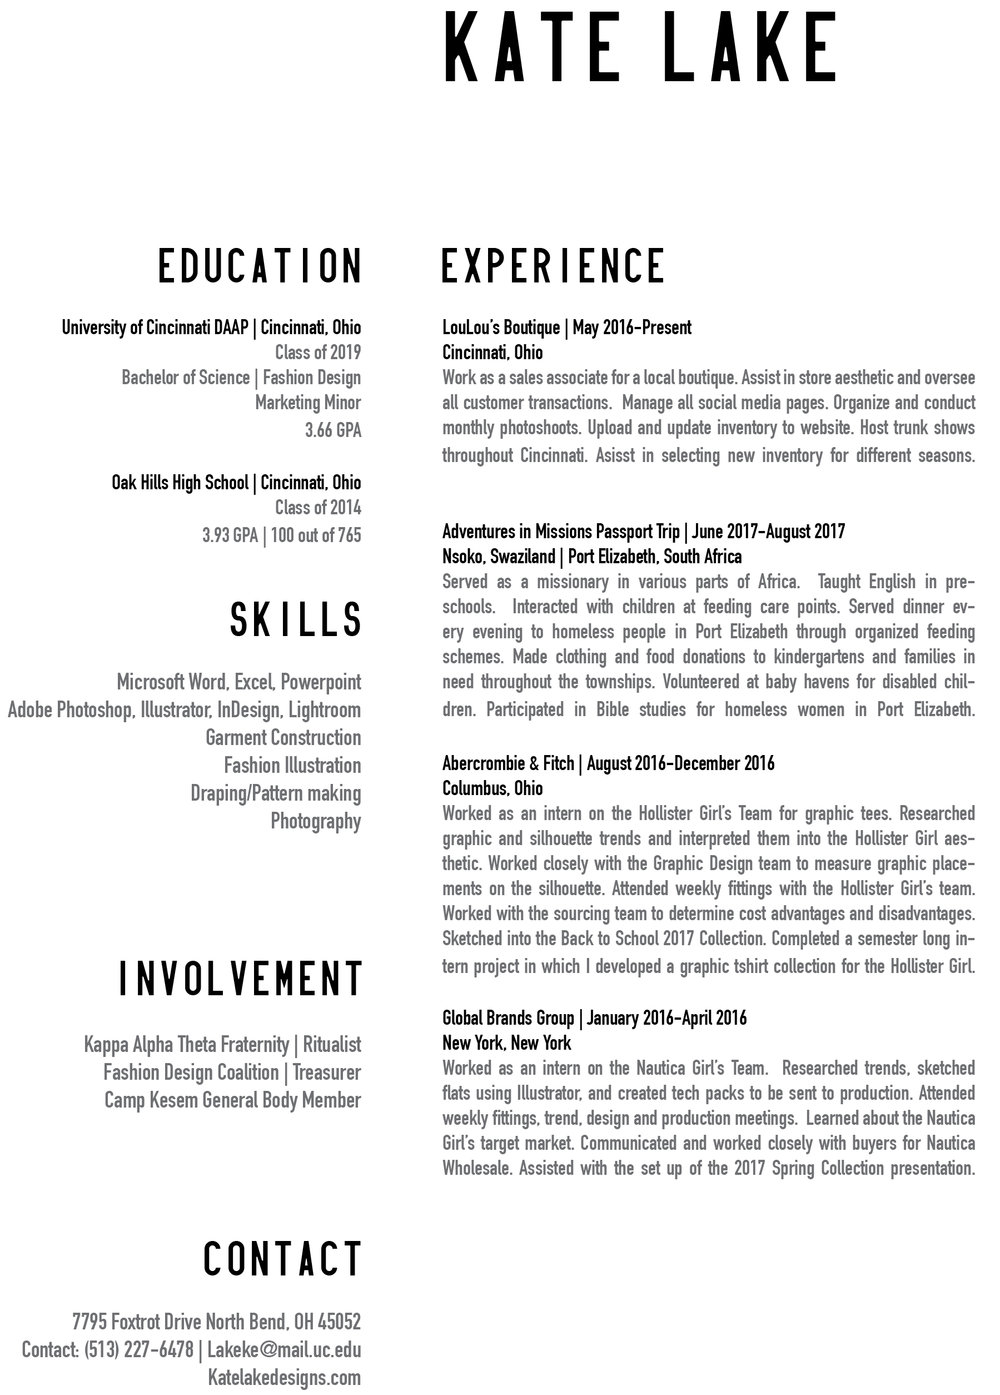 RESUME — KATE LAKE